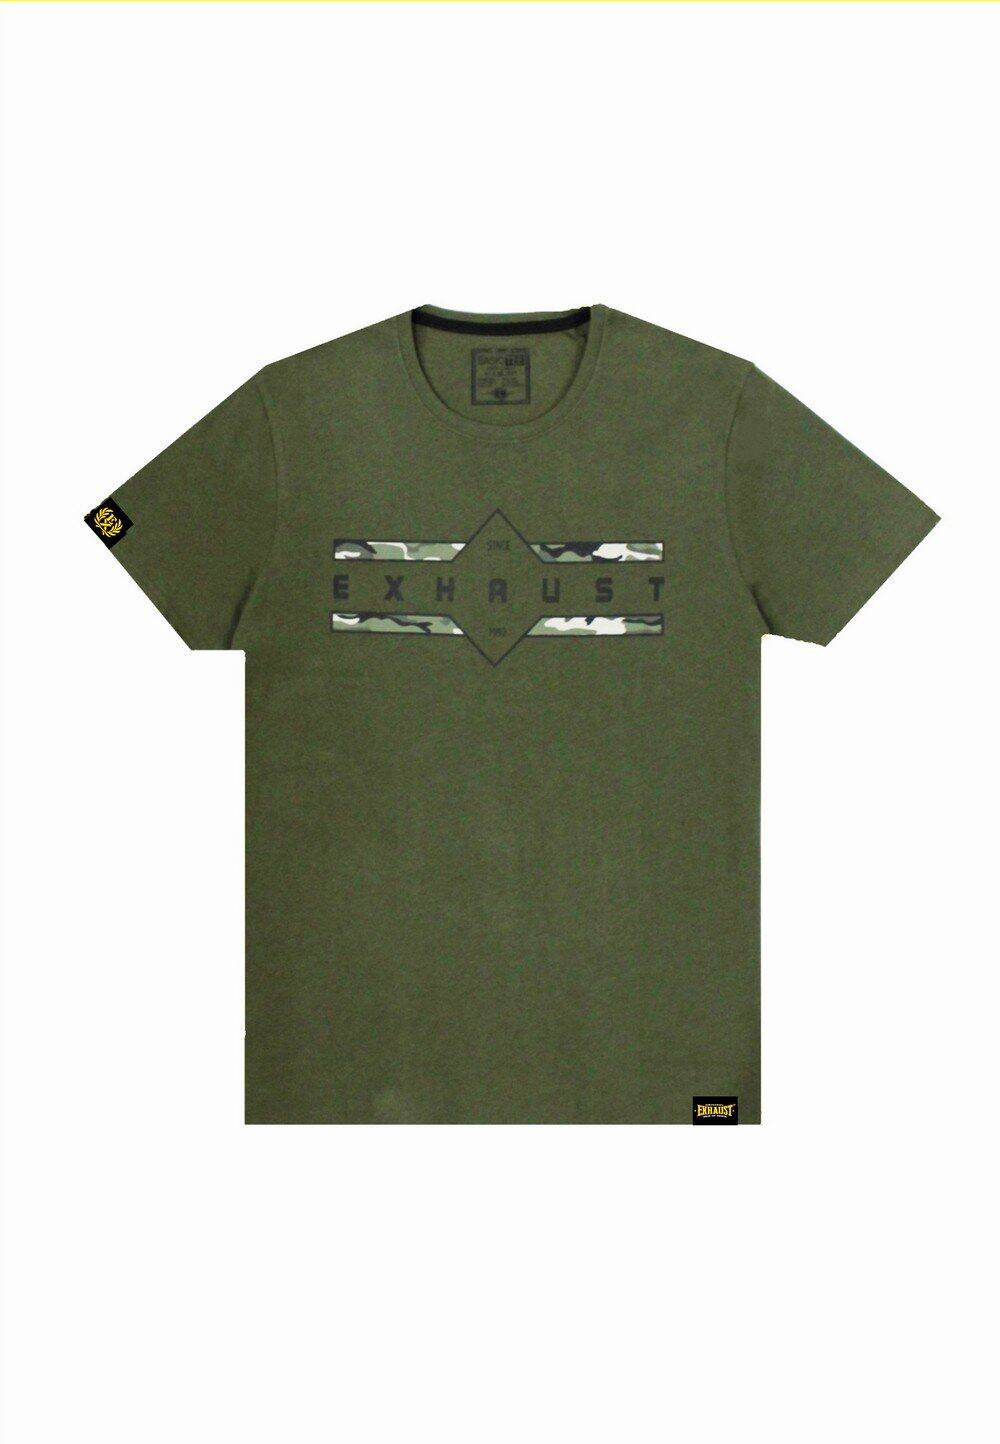 Exhaust Camouflage Print Army Tee 735